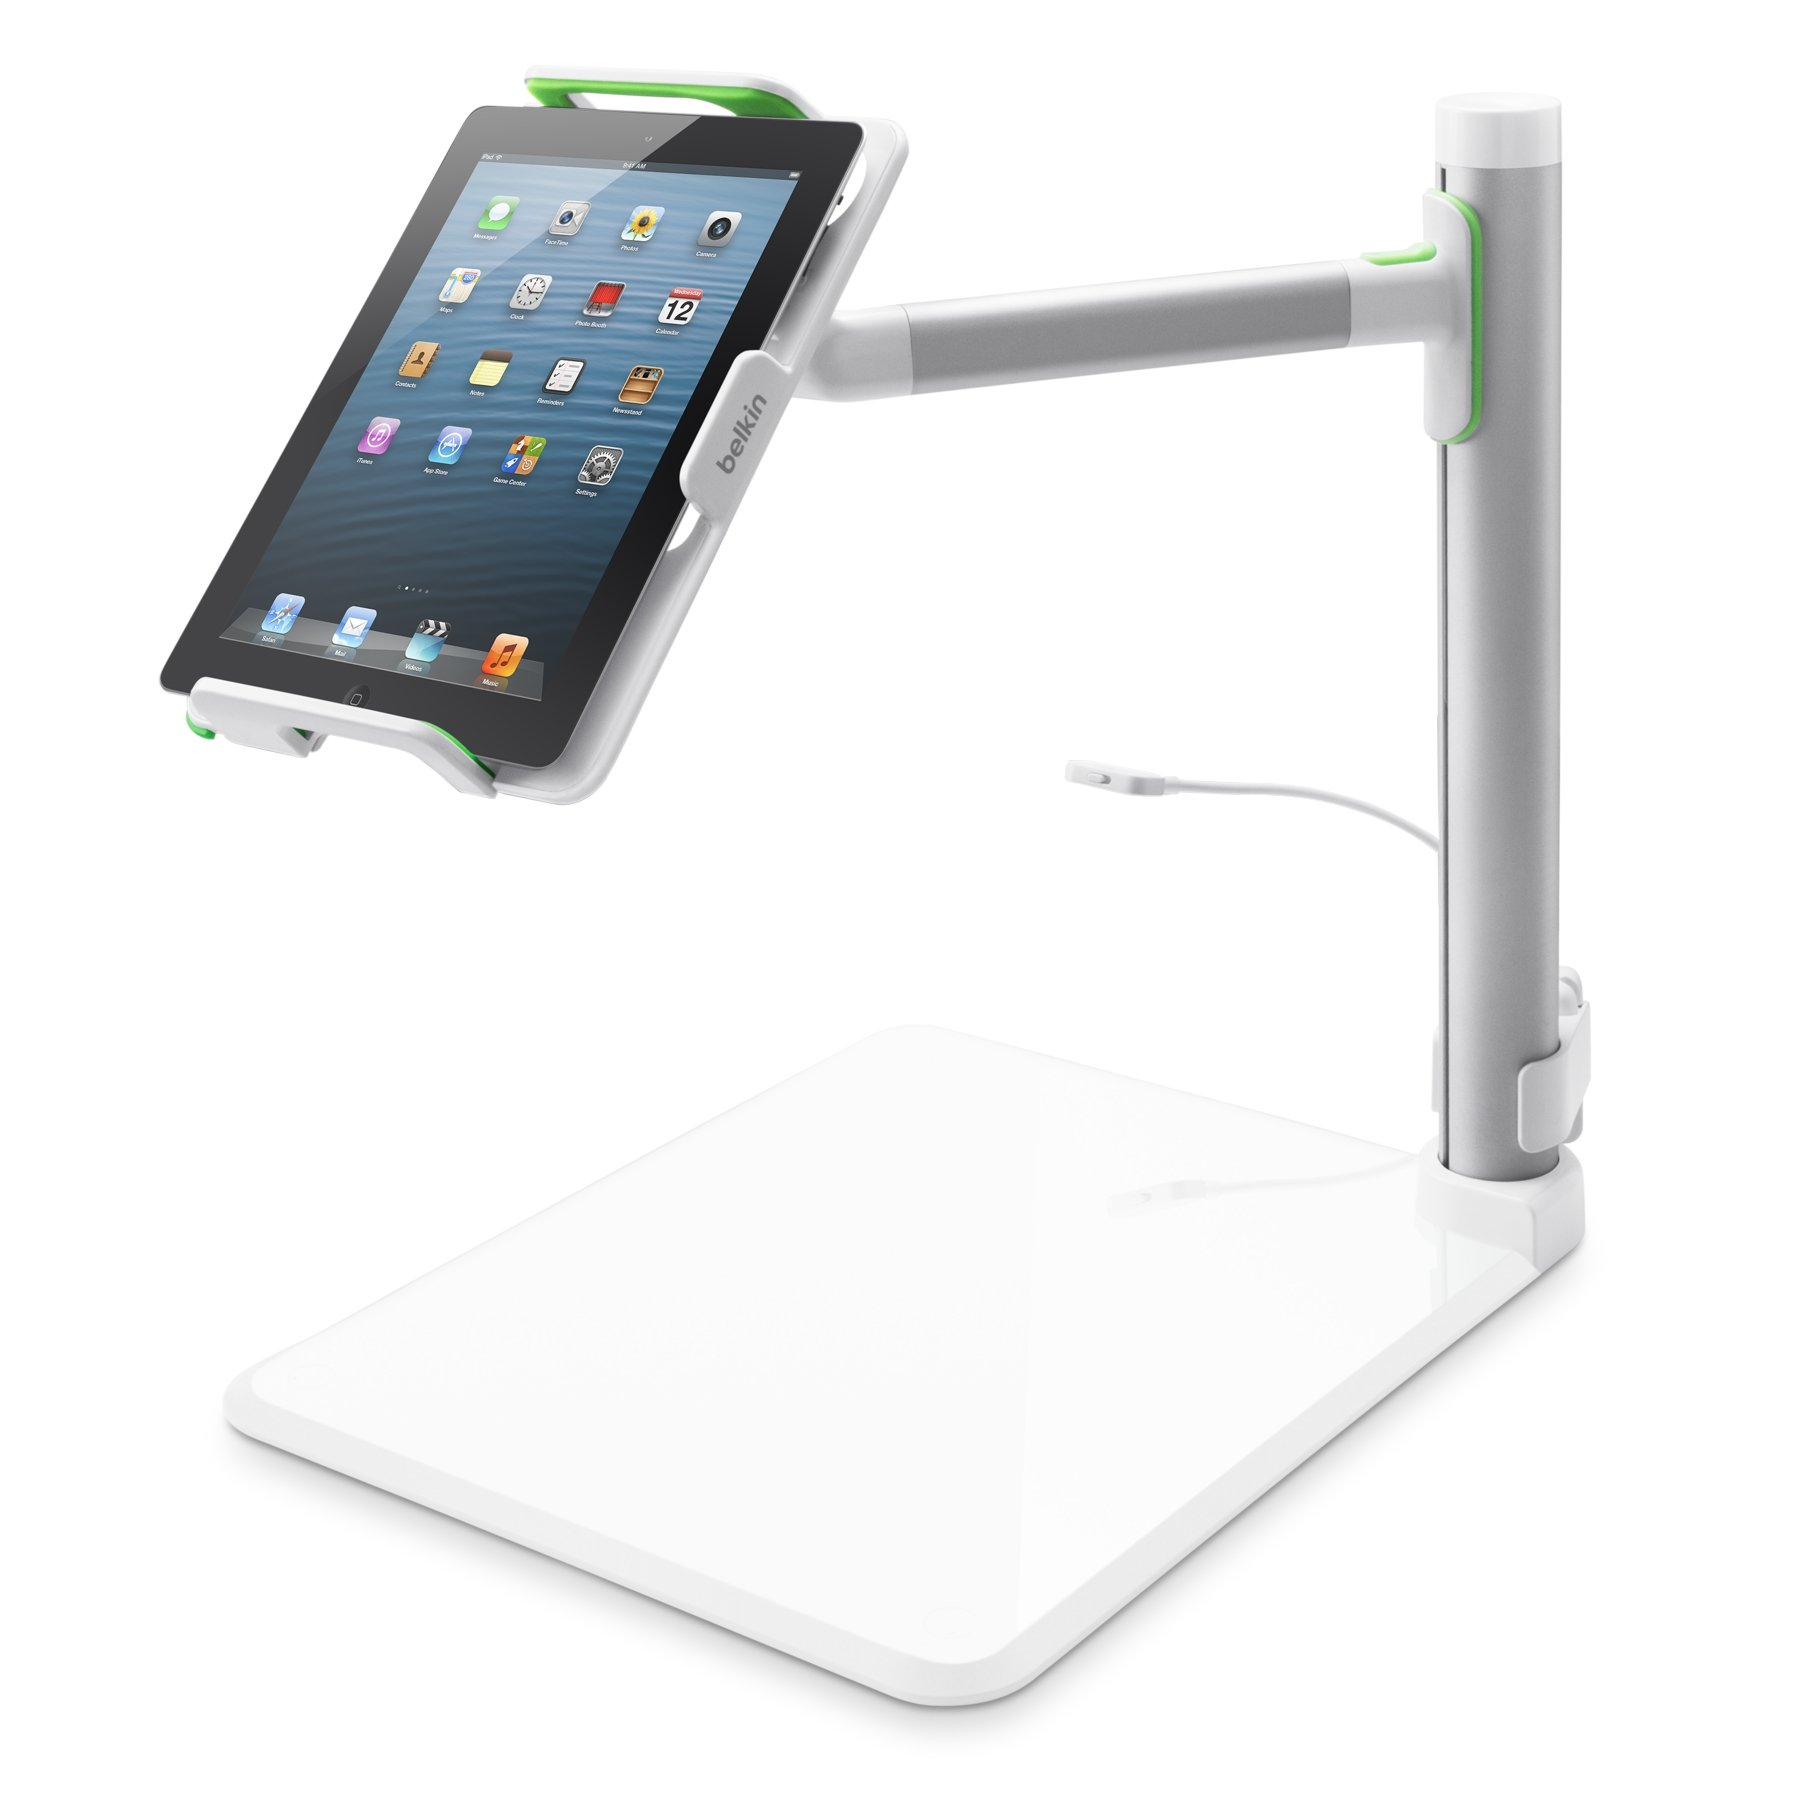 Belkin B2B054 Tablet Stage Stand for Presenters and Lecturers for Tablets from 7-11 Inches Including All Generations of iPad, iPad mini and iPad Air, Designed for School and Classroom